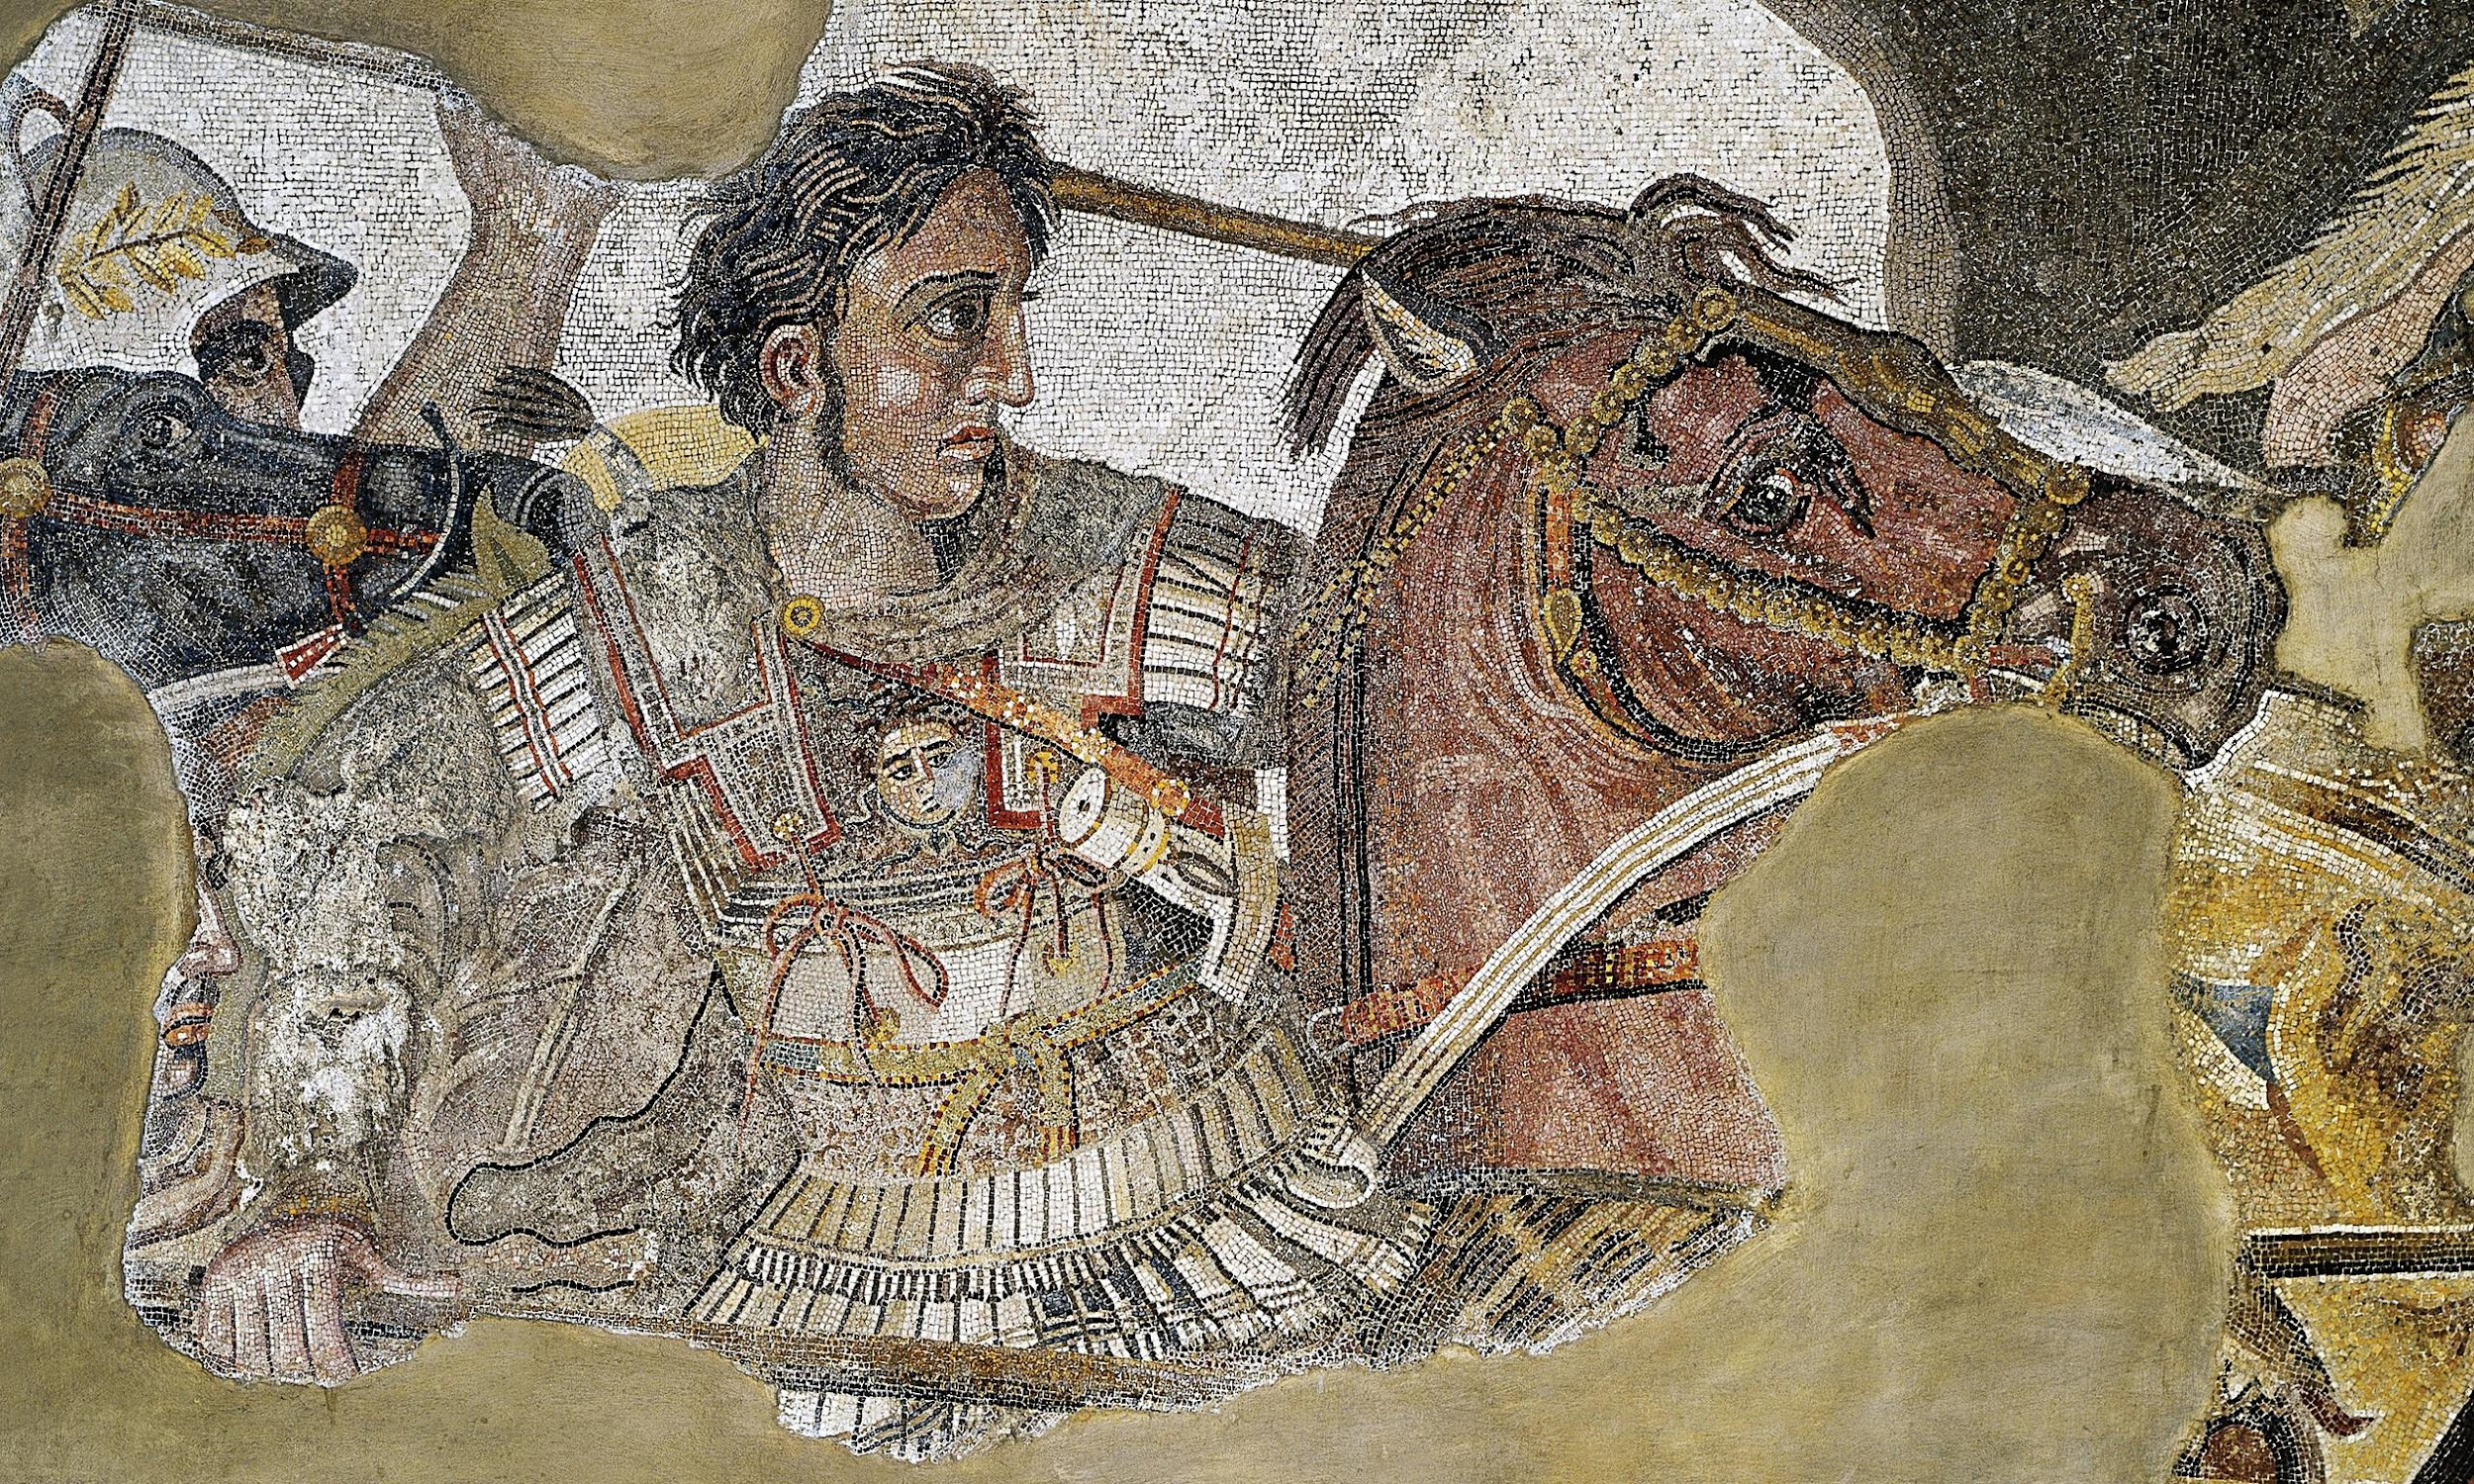 a mosaic of Alexander the Great on his horse in a battle against Persia